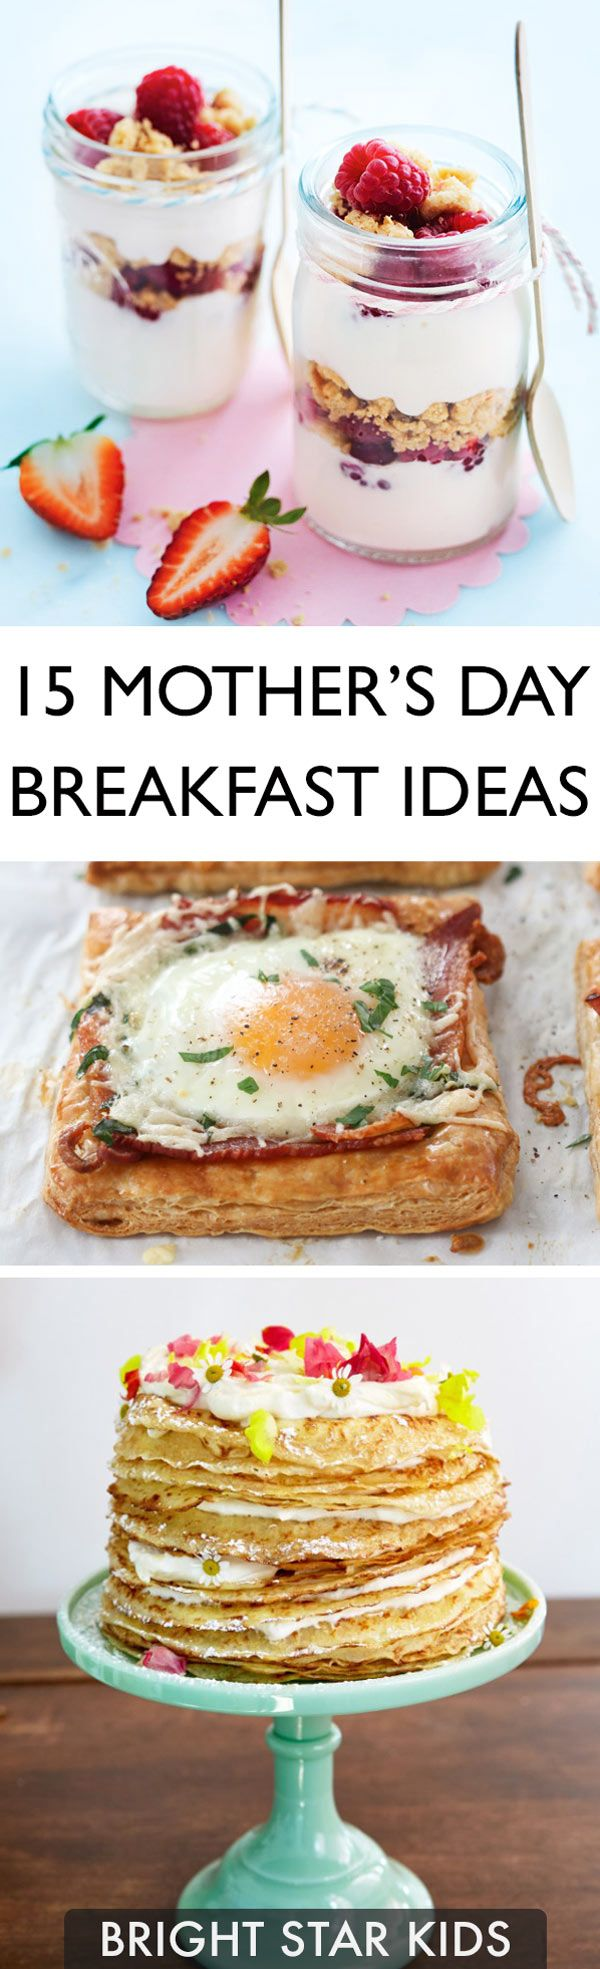 15 Mothers Day Breakfast Or Brunch Ideas Easter St Patricks